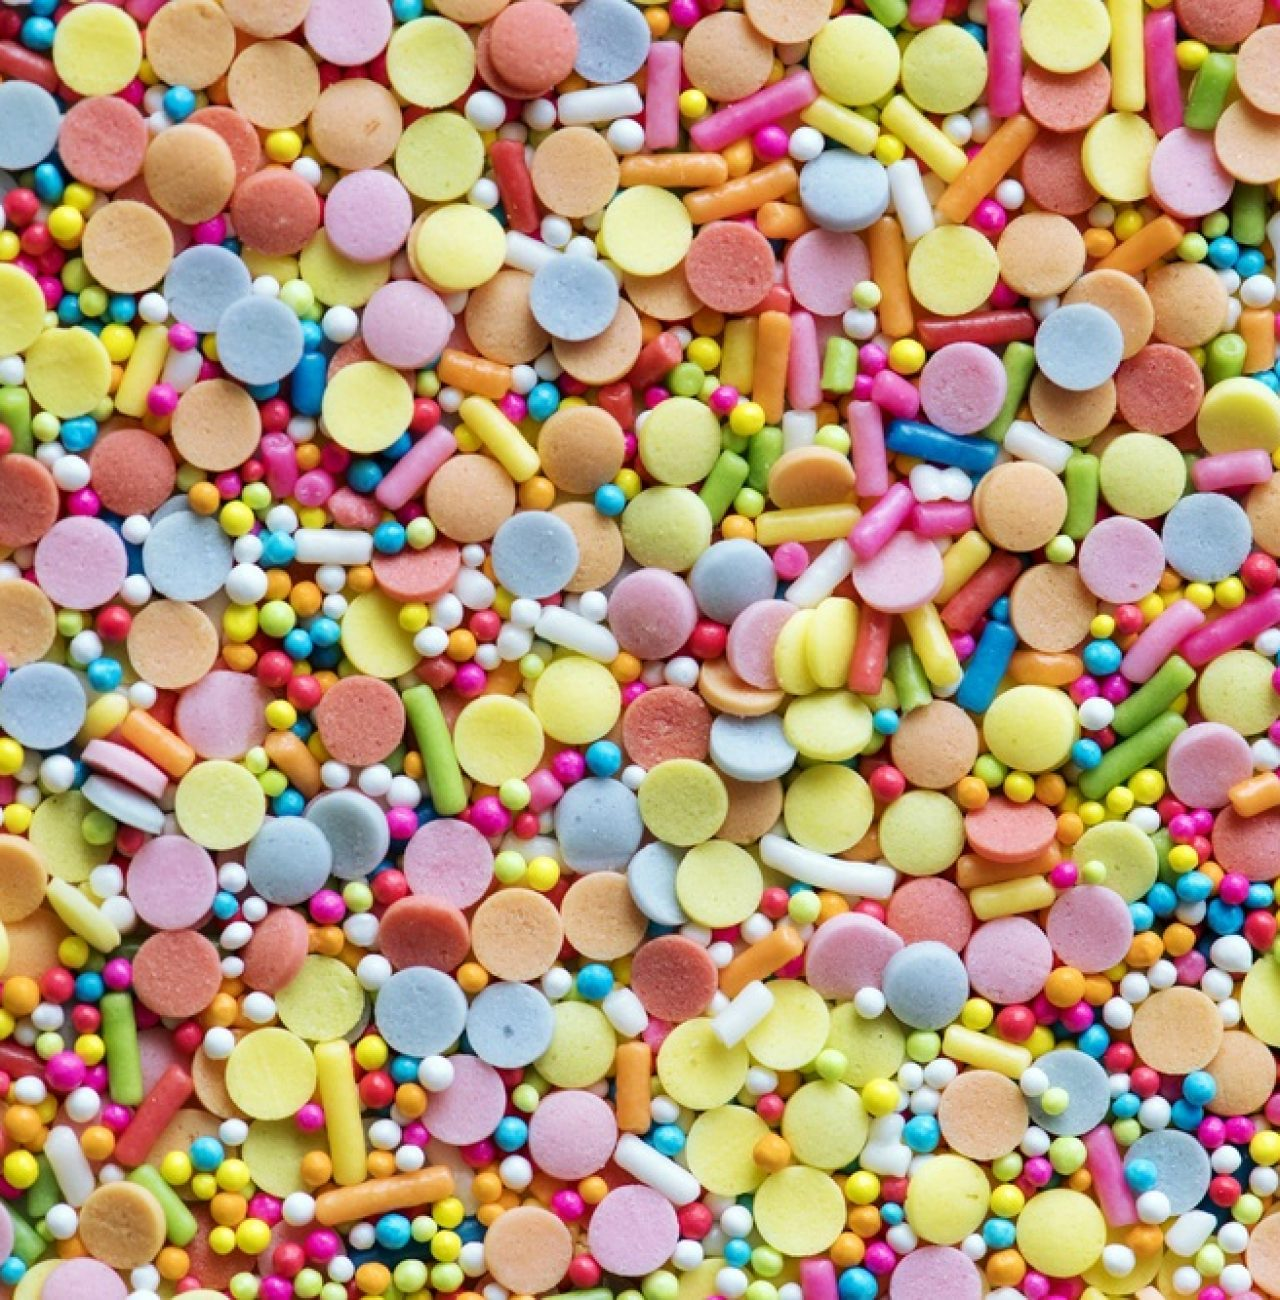 Flat lay of colorful rainbow sparkle candies of different shapes and sizes